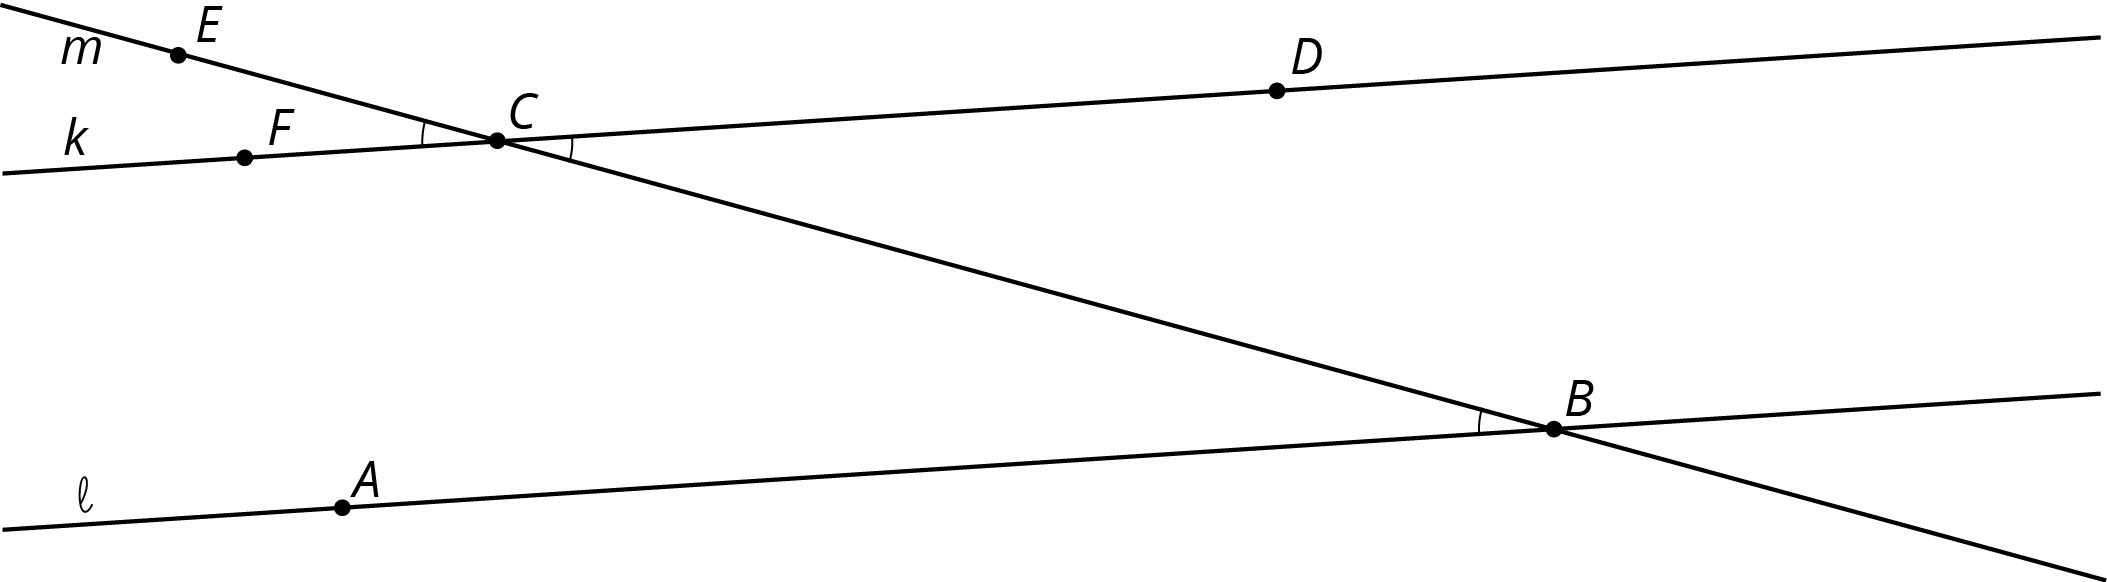 Points F, C, and D lie on line k, where point F is to the left of point C and point D is to the right of point C.  Points A and B lie on line l, where point B is to the right of point A. Lines k and l are parallel, where line k is above line l, and both lines slant upward and to the right. A third line, labeled m, intersects lines k and l at point C and point B and has a point labeled E located to the left of point C.